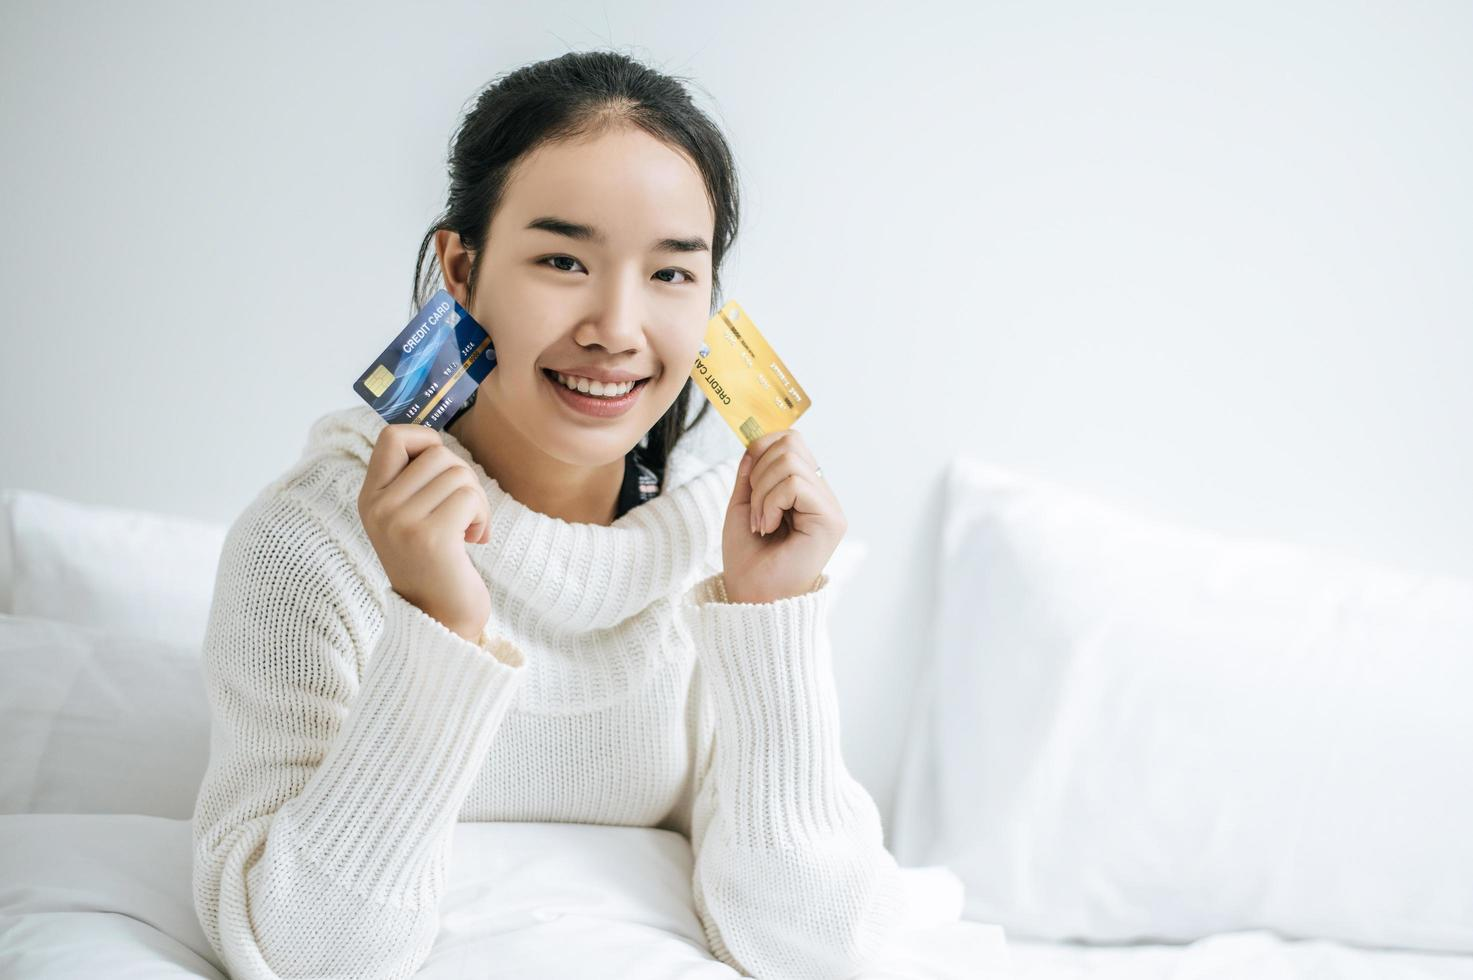 Young woman with a credit card smiling on bed photo